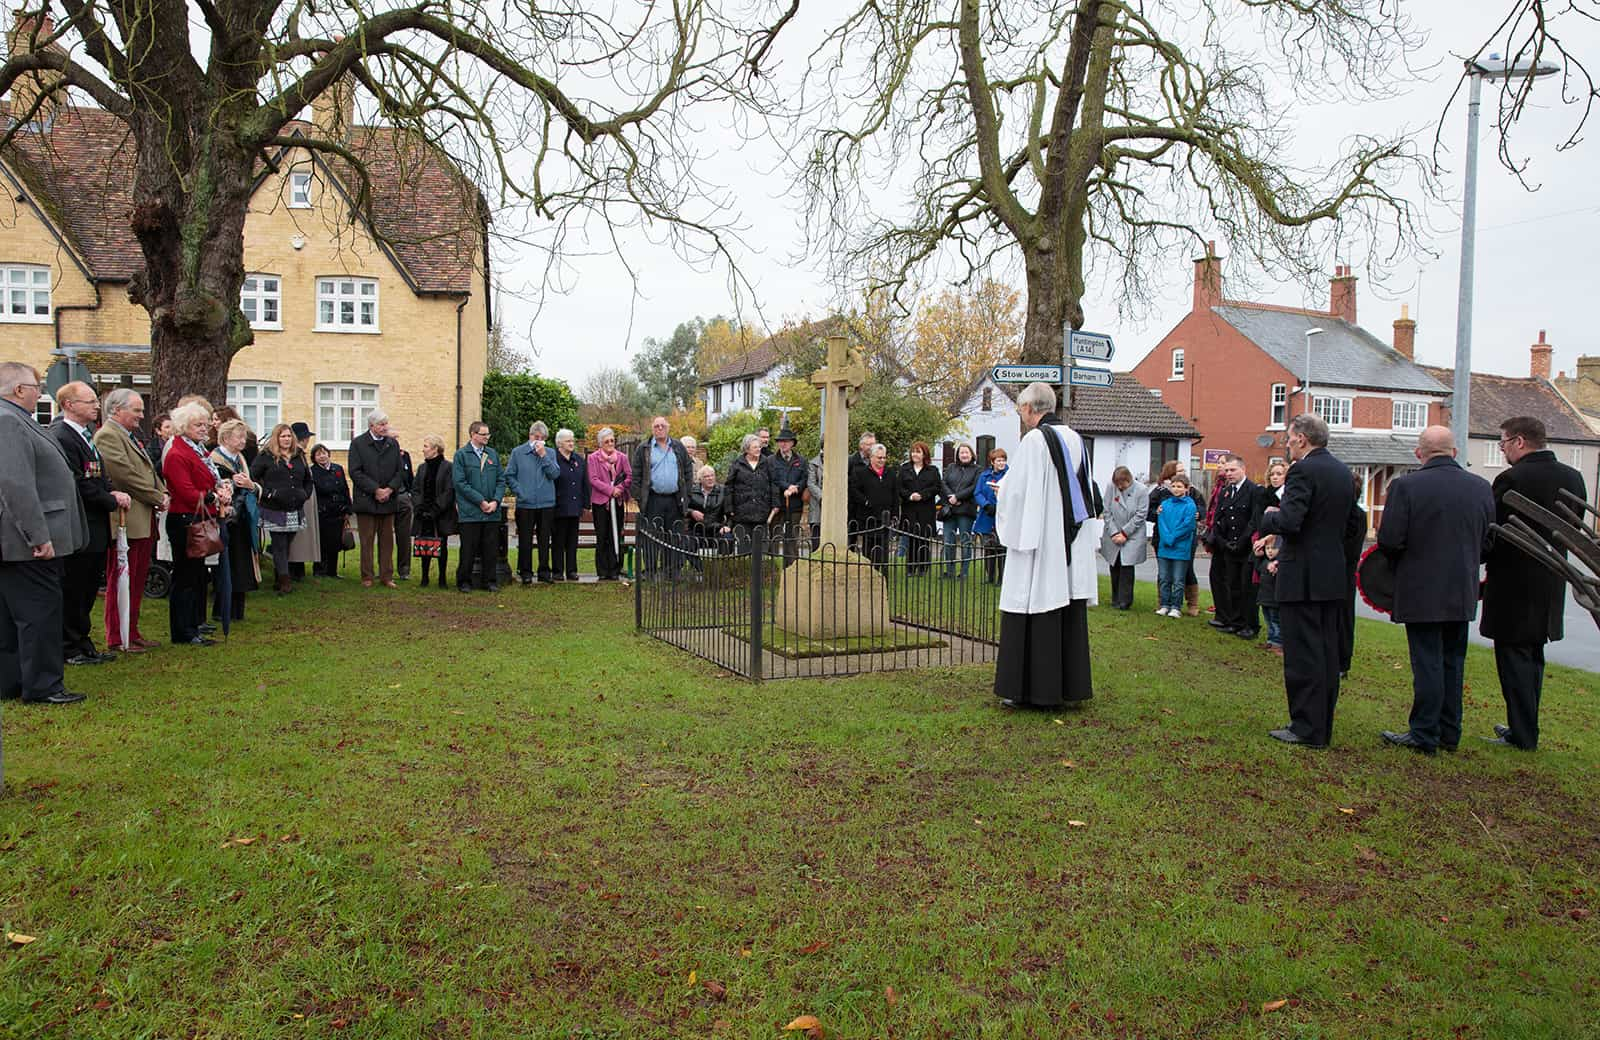 Remembrance at Spaldwick